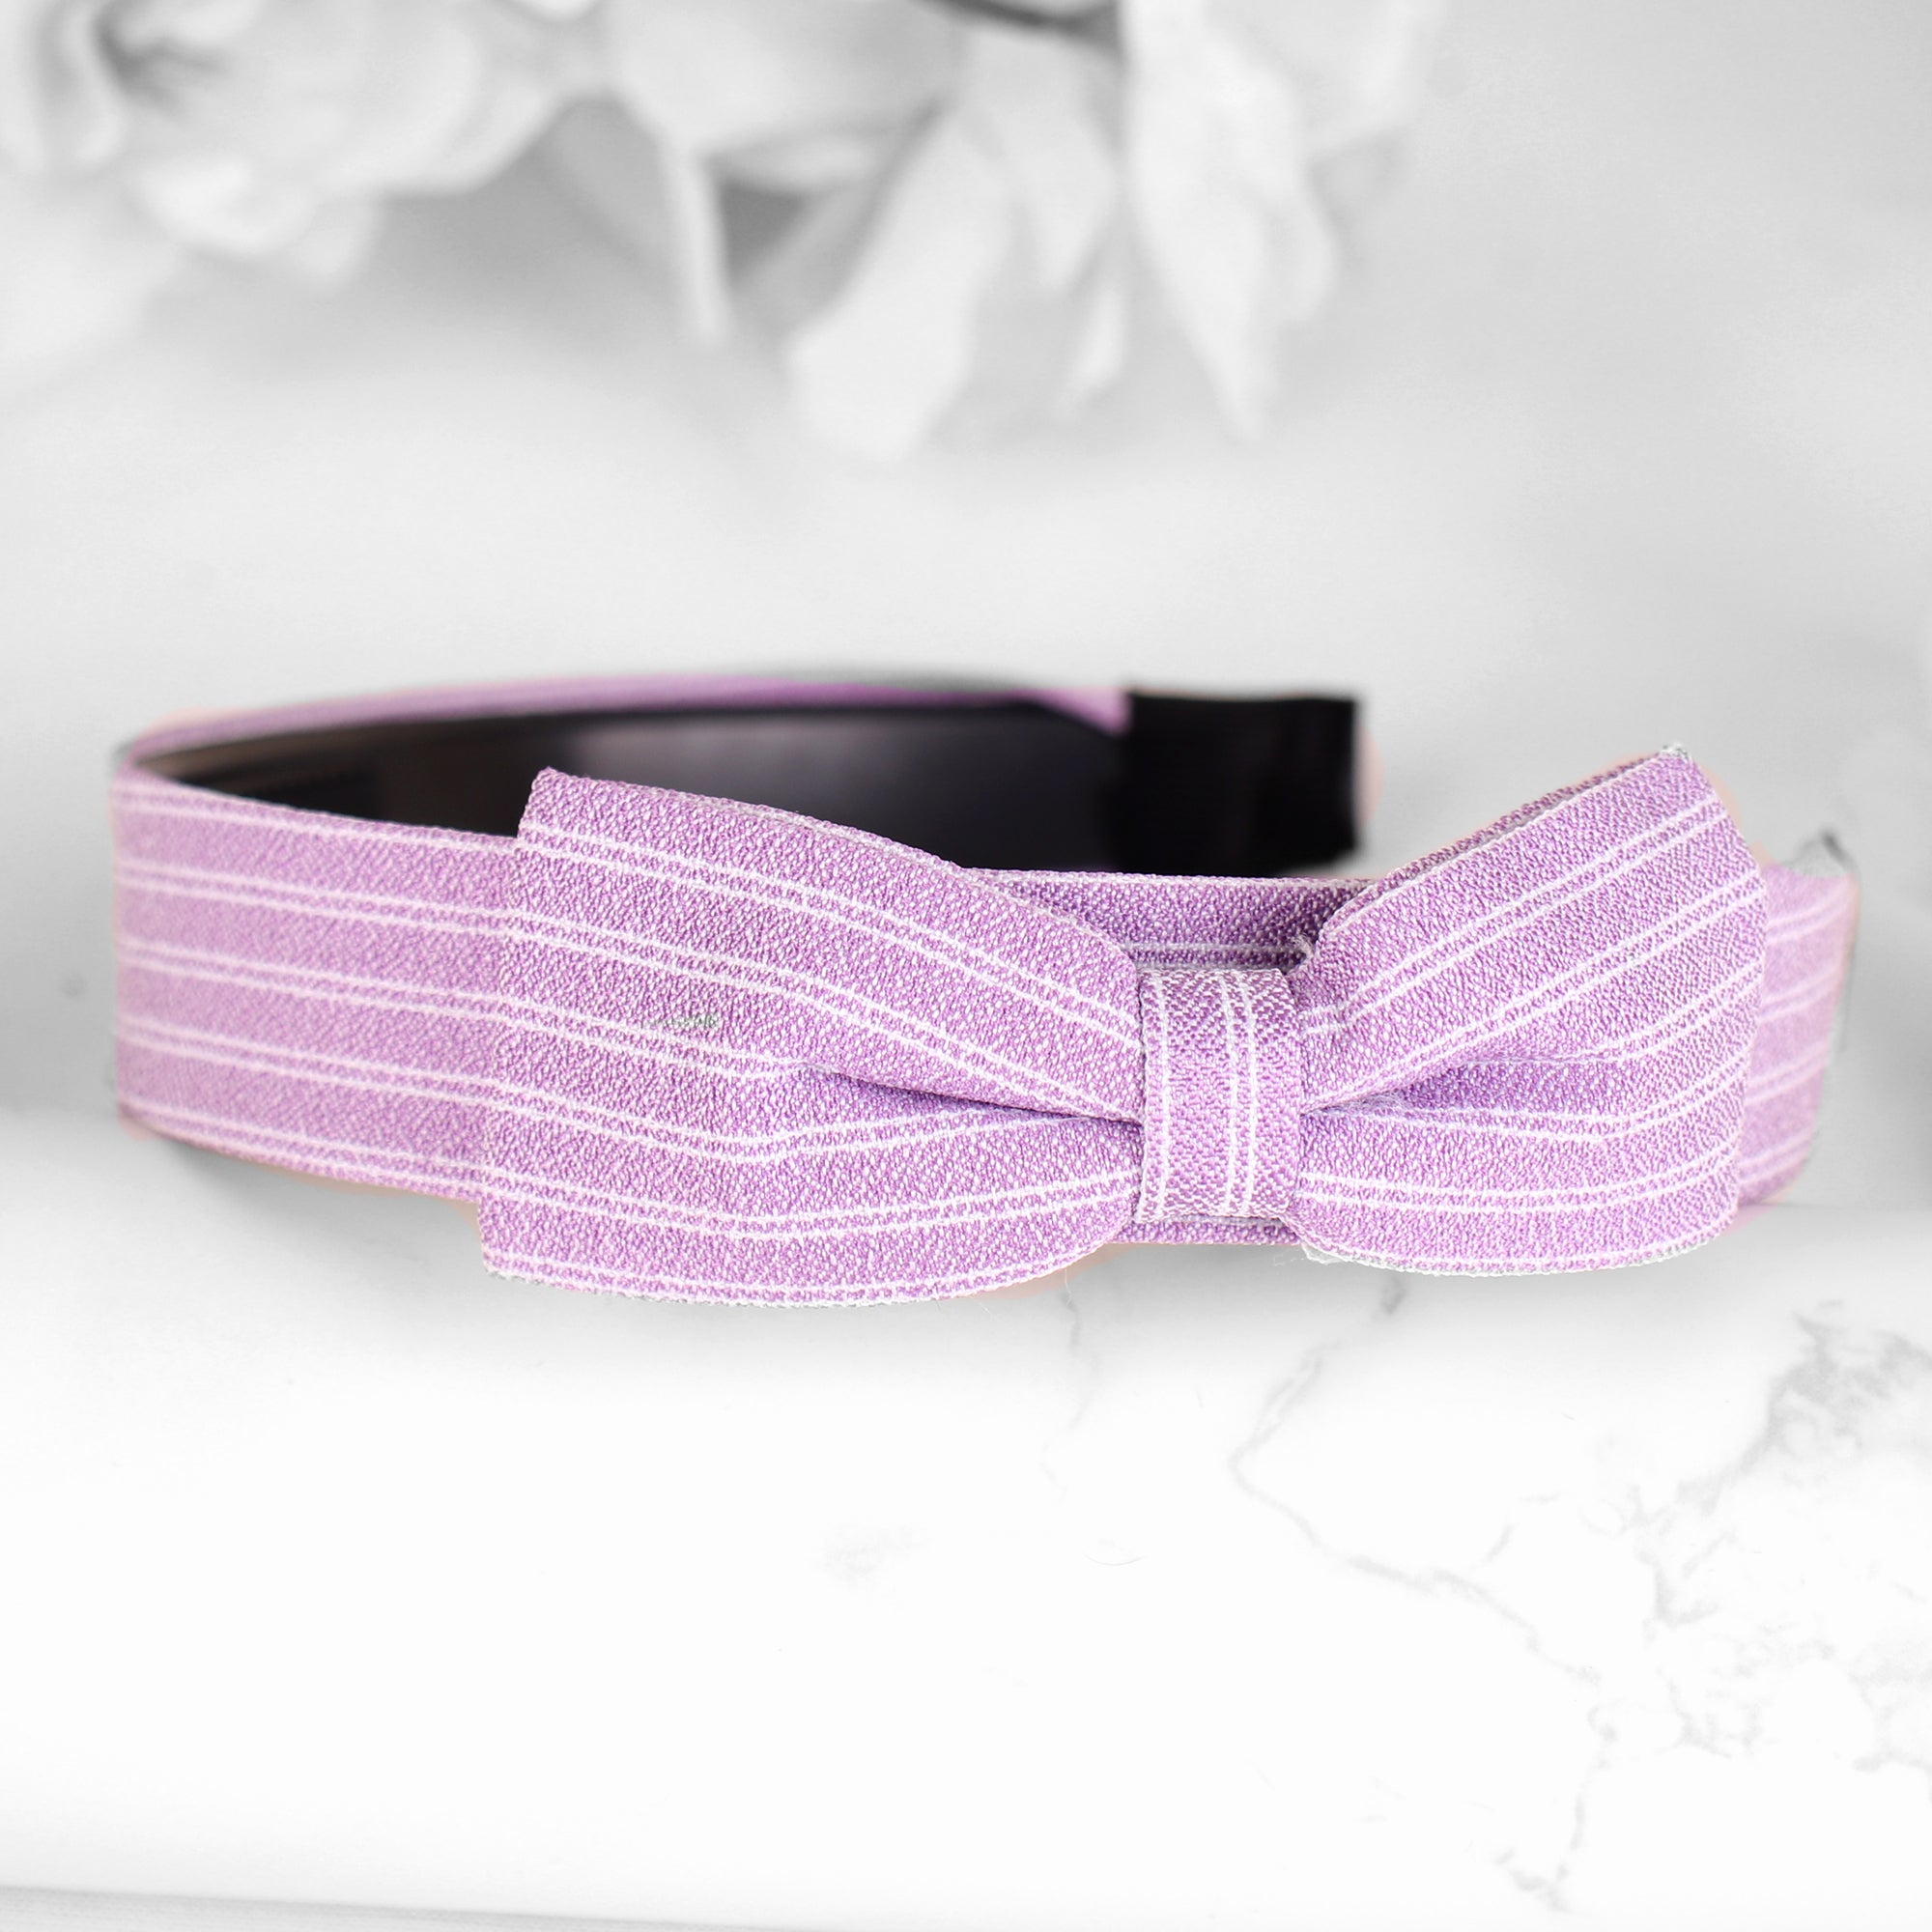 HairBand,Bewitching Bow Hair Band in Mauve - Cippele Multi Store